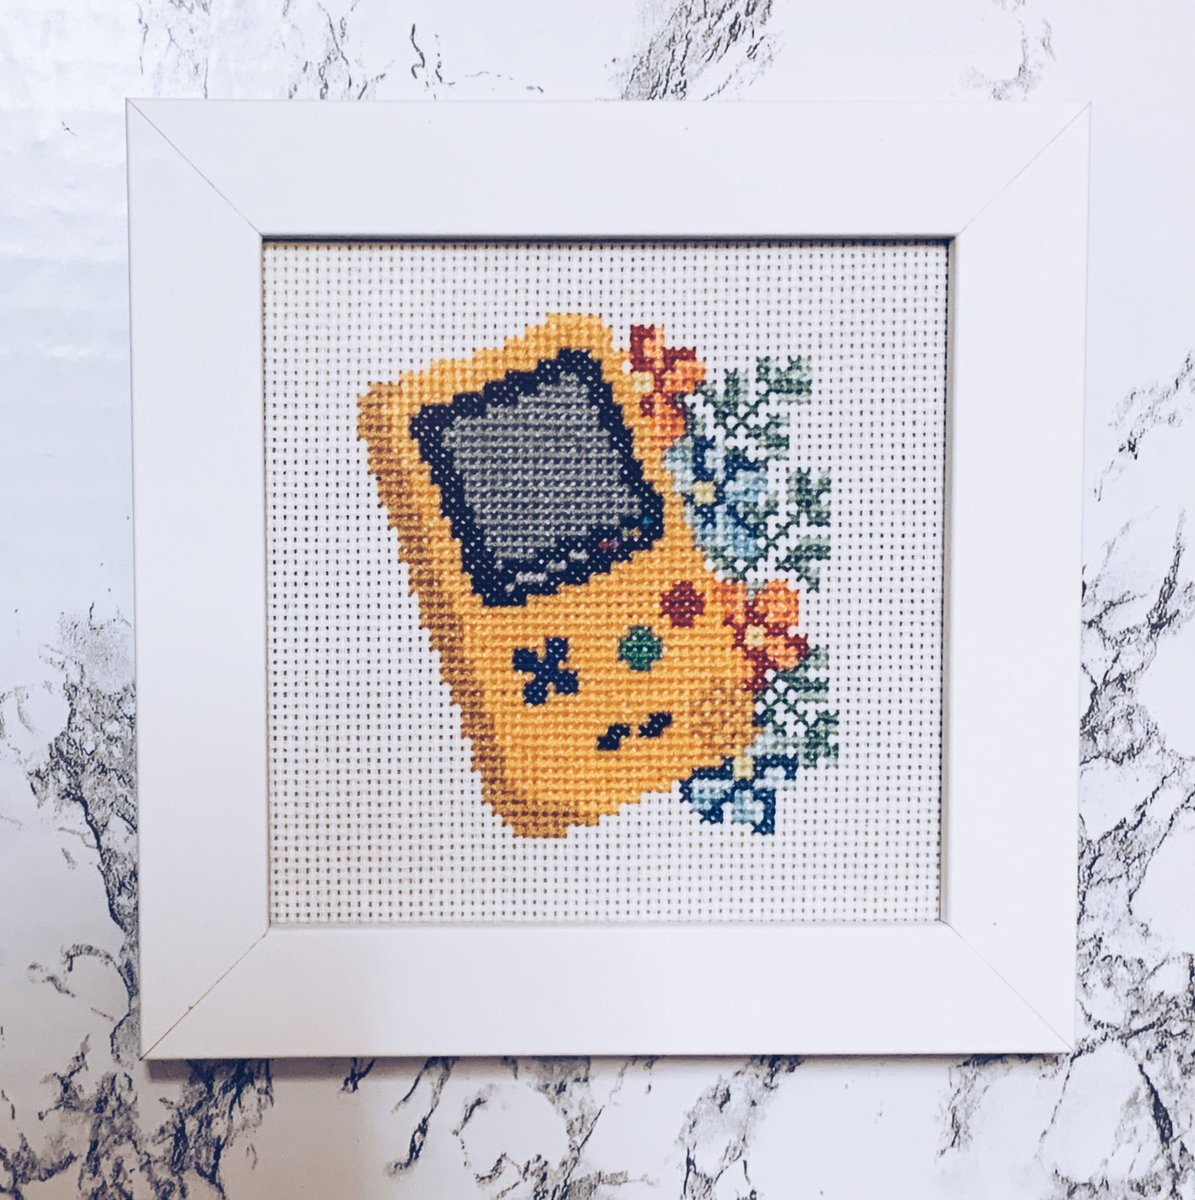 🔴 HAPPY POKÉMON DAY ⚪️  Cross-stitched this from a pattern cause it's a fond memory having the Pikachu GameBoy Color and playing til my lil eyes hurt 🥺    💗 THANK YOU POKÉMON for all these years 💗 #PokemonDay #Pokemon25 #Pokemon25thAnniversary